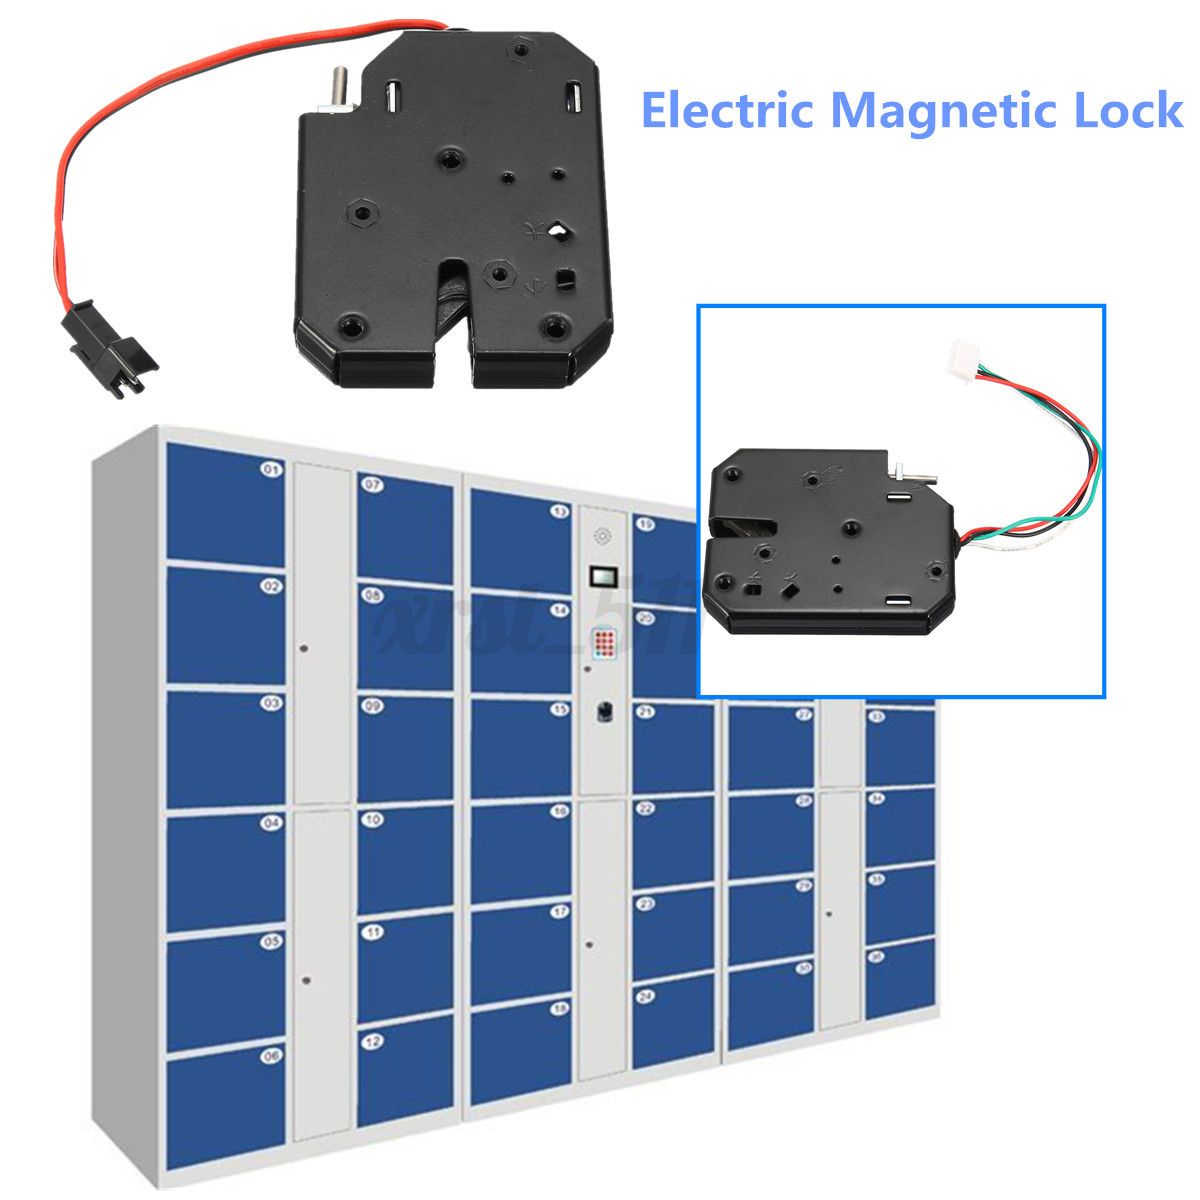 Image is loading 150KG-330lb-Electric-Magnetic-Lock-Door-Access-Control-  sc 1 st  eBay & 150KG 330lb Electric Magnetic Lock Door Access Control Cabinet ...